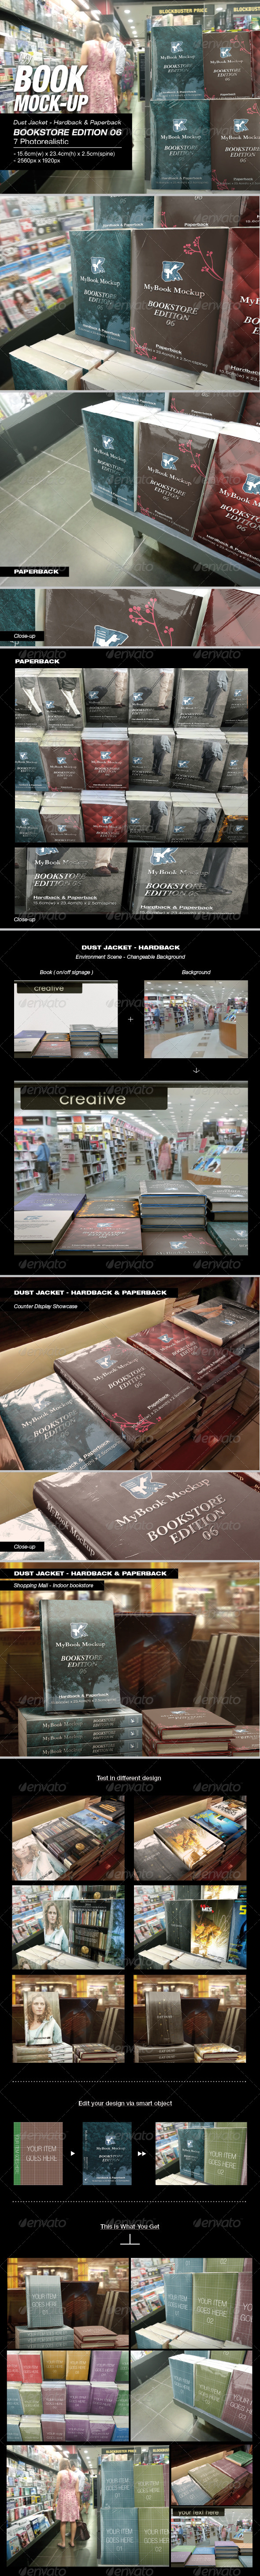 GraphicRiver MyBook Mock-up Bookstore Edition 06 8165911